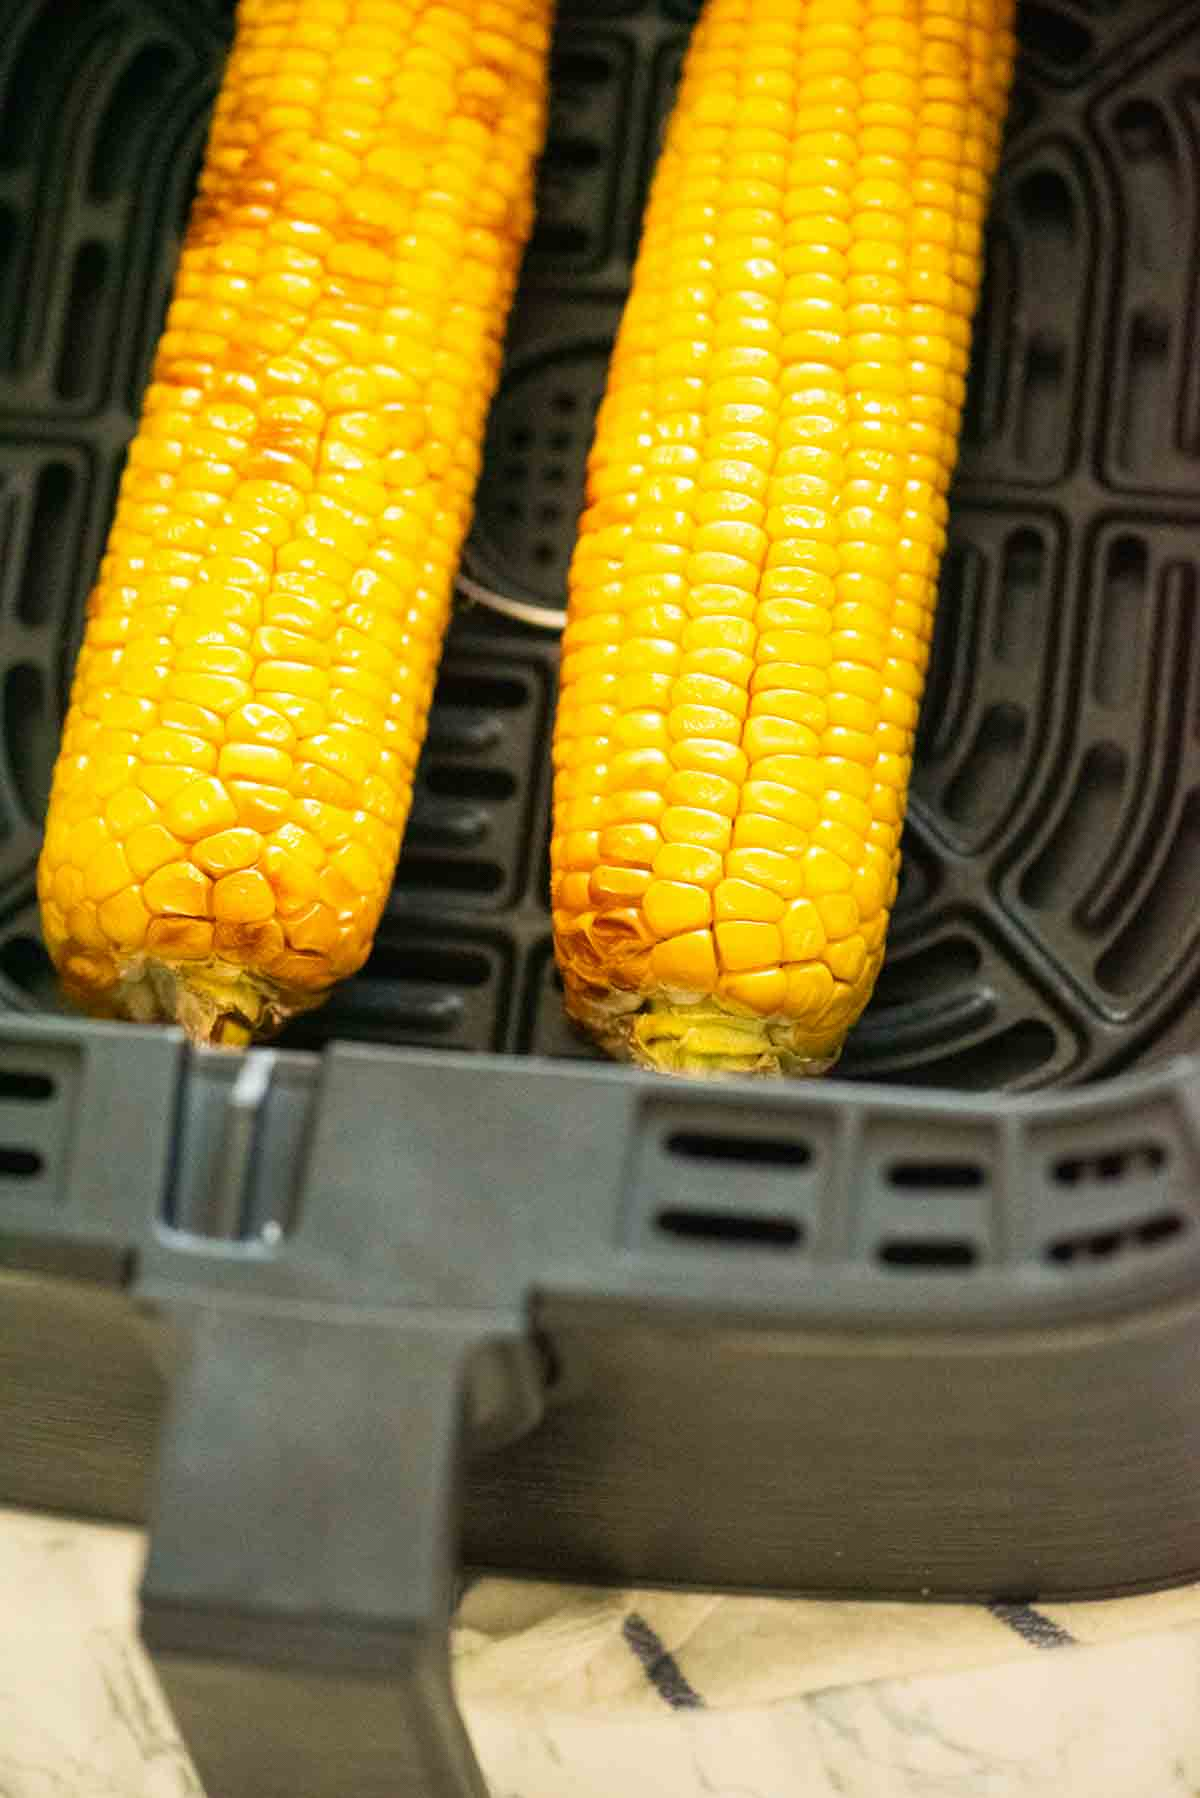 Air fryer basket with corn on the cob